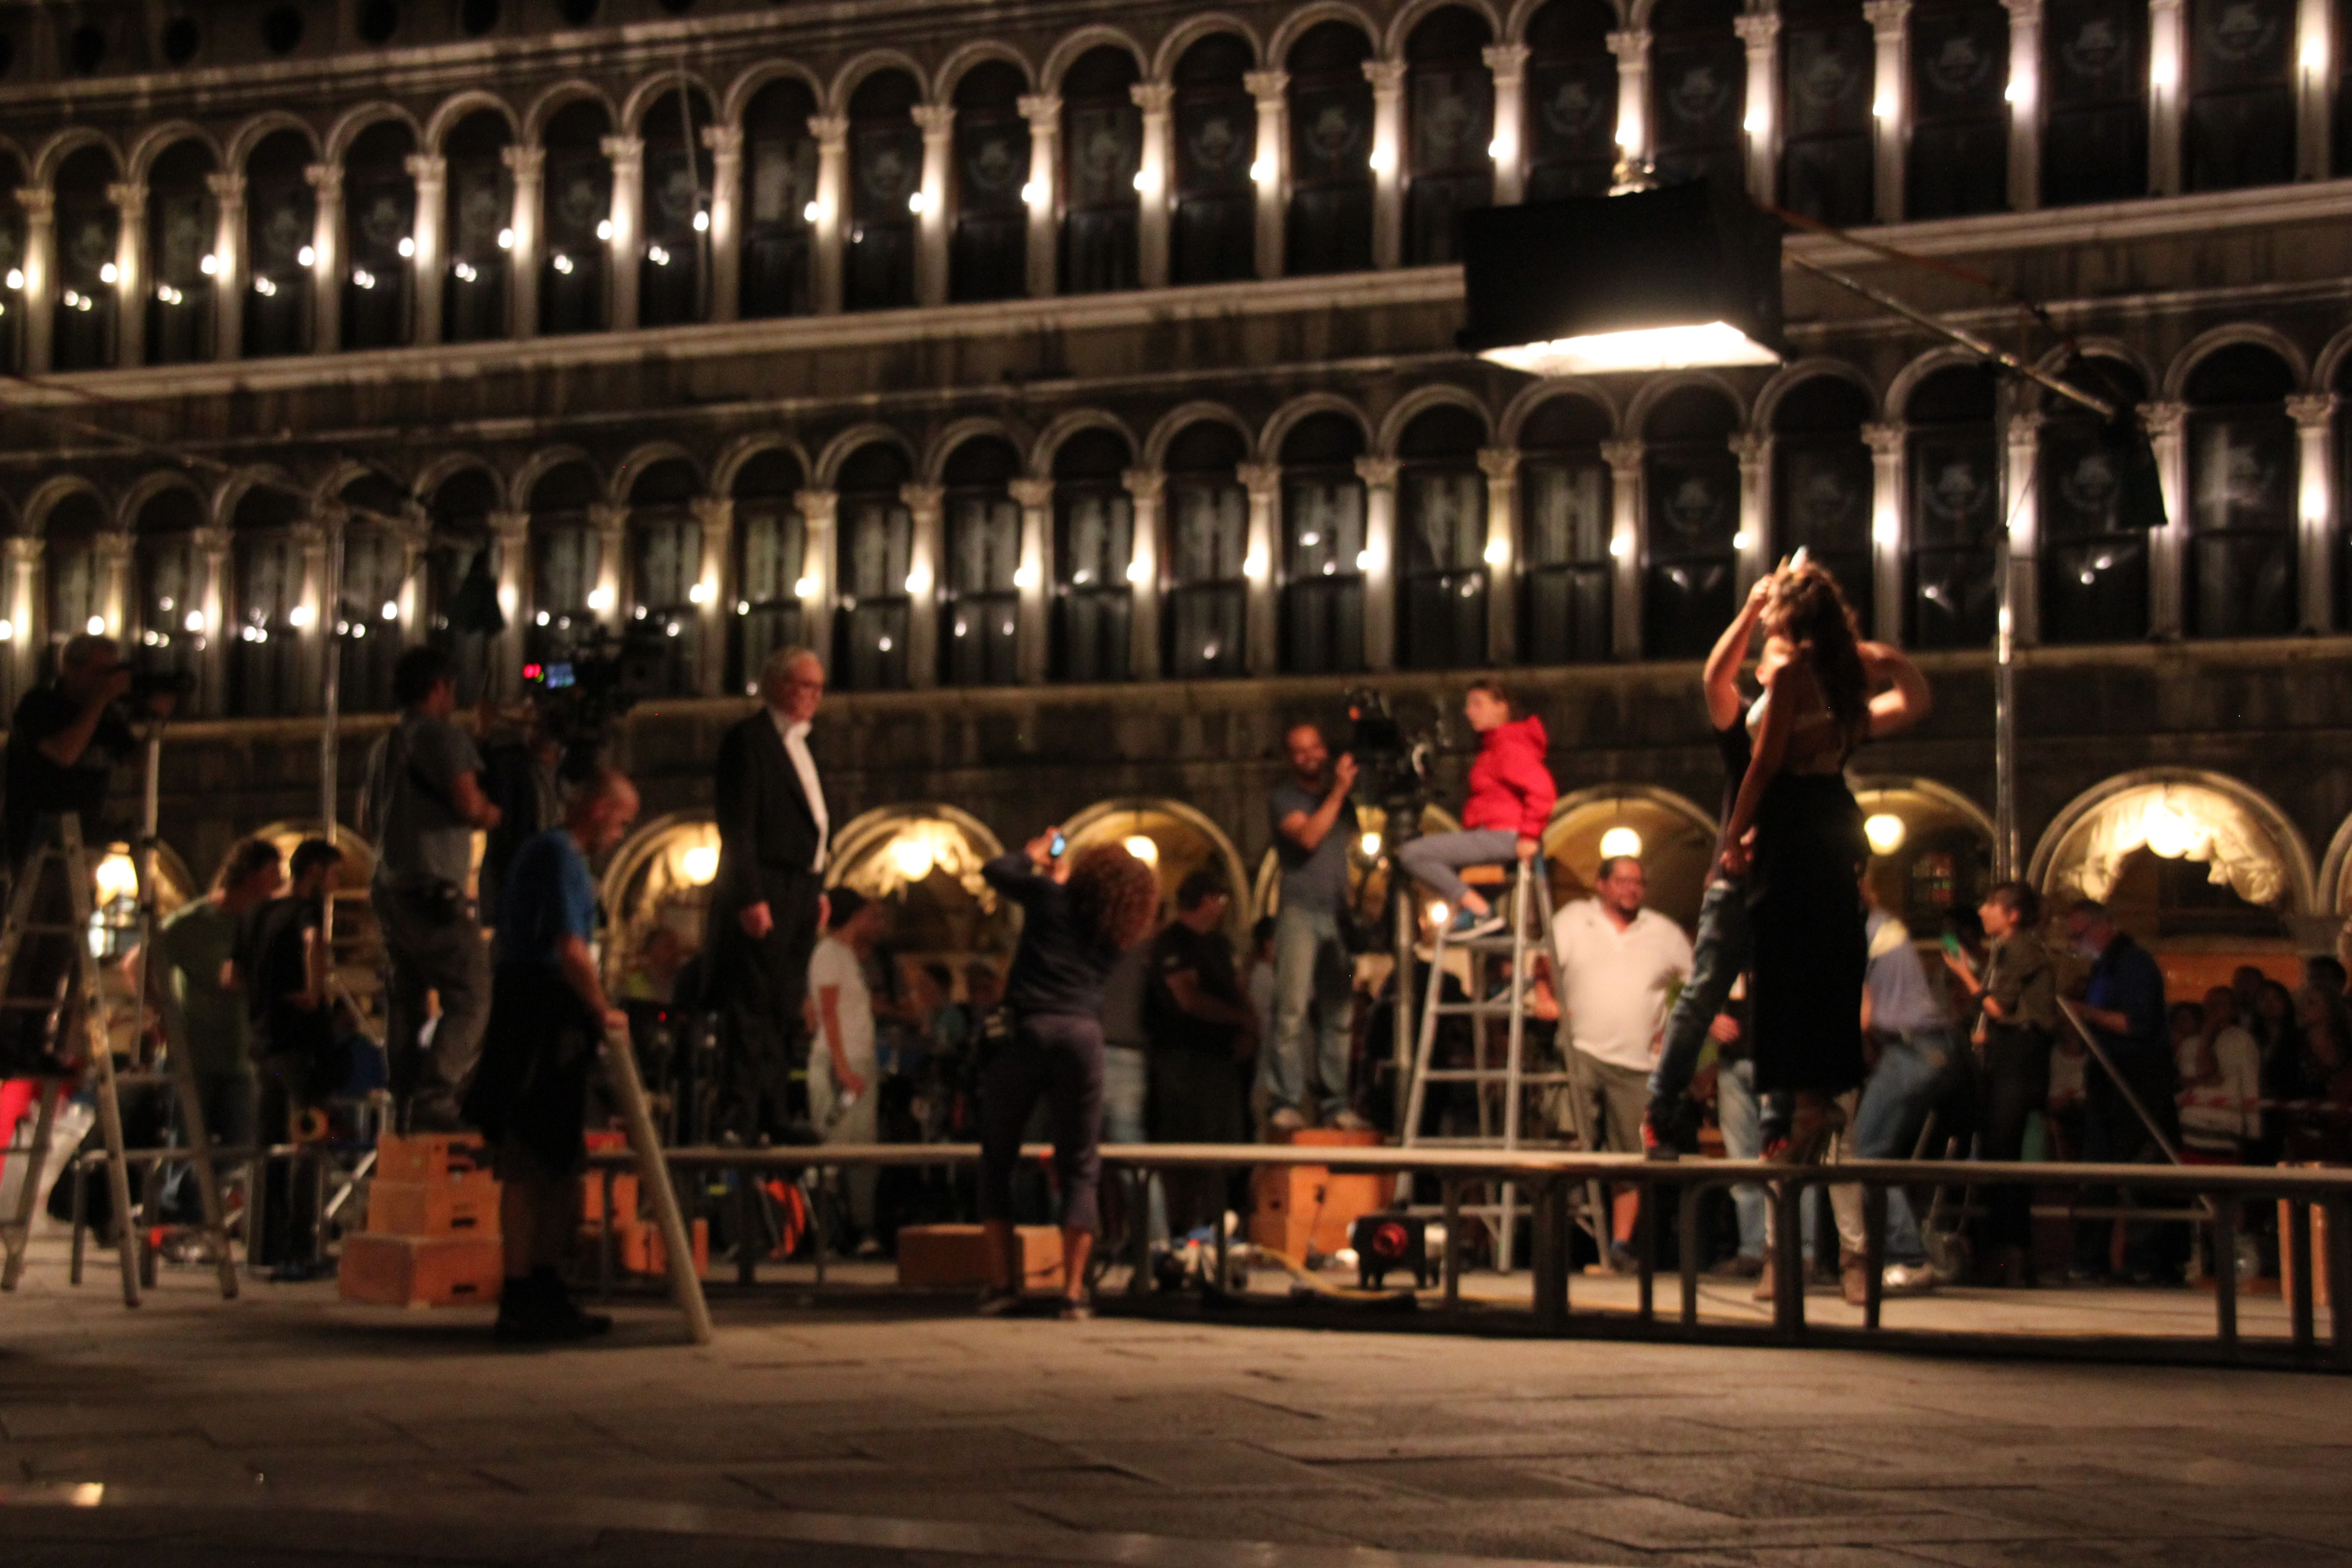 Michael Caine filming in Piazza San Marco, summer 2014